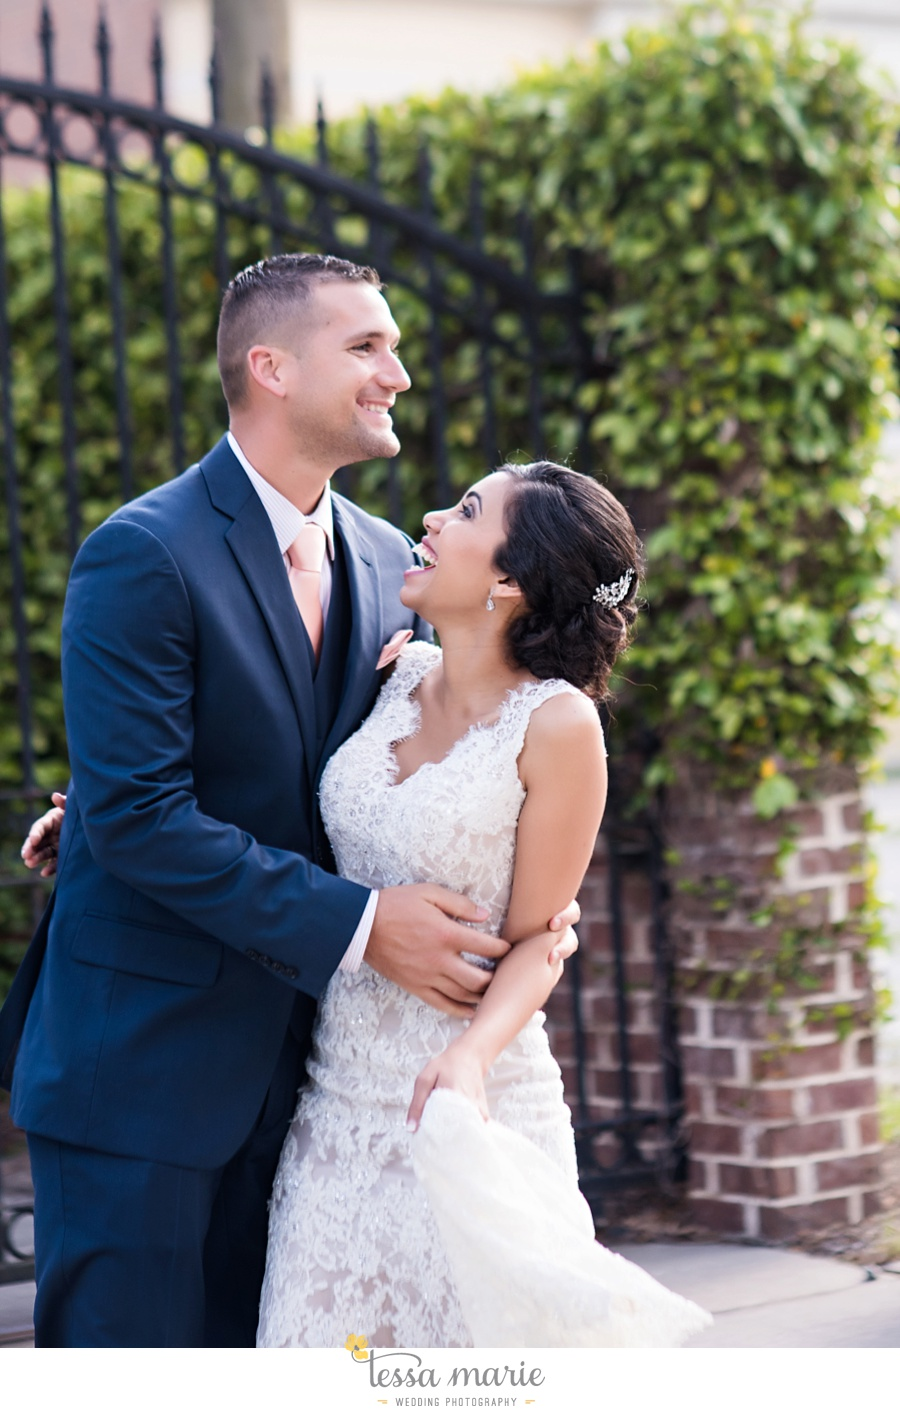 savannah_destination_wedding_photographer_wormsole_elopement_tessa_marie_weddings_essence_of_australia_gown_0130